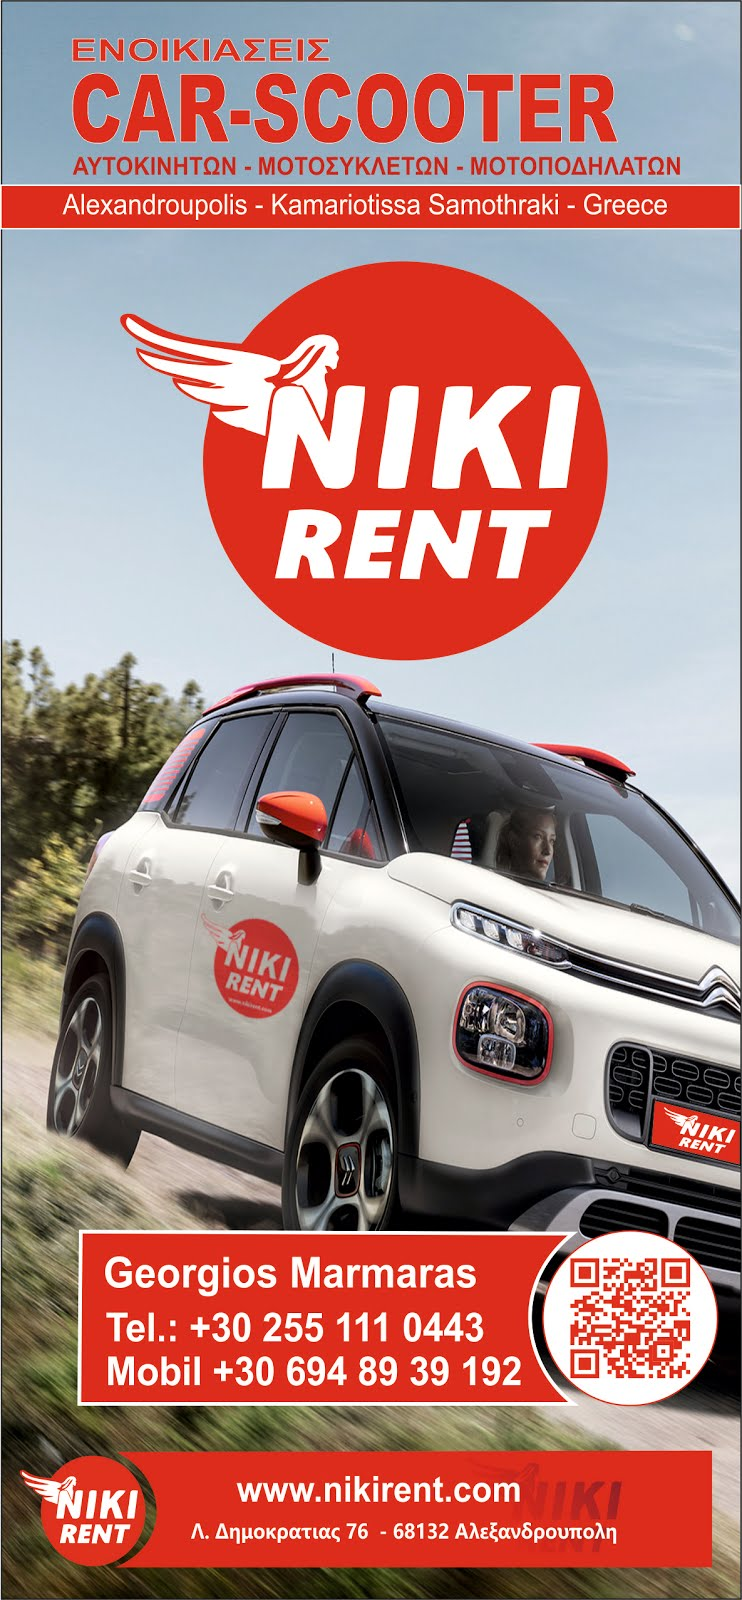 Niki Rent a car